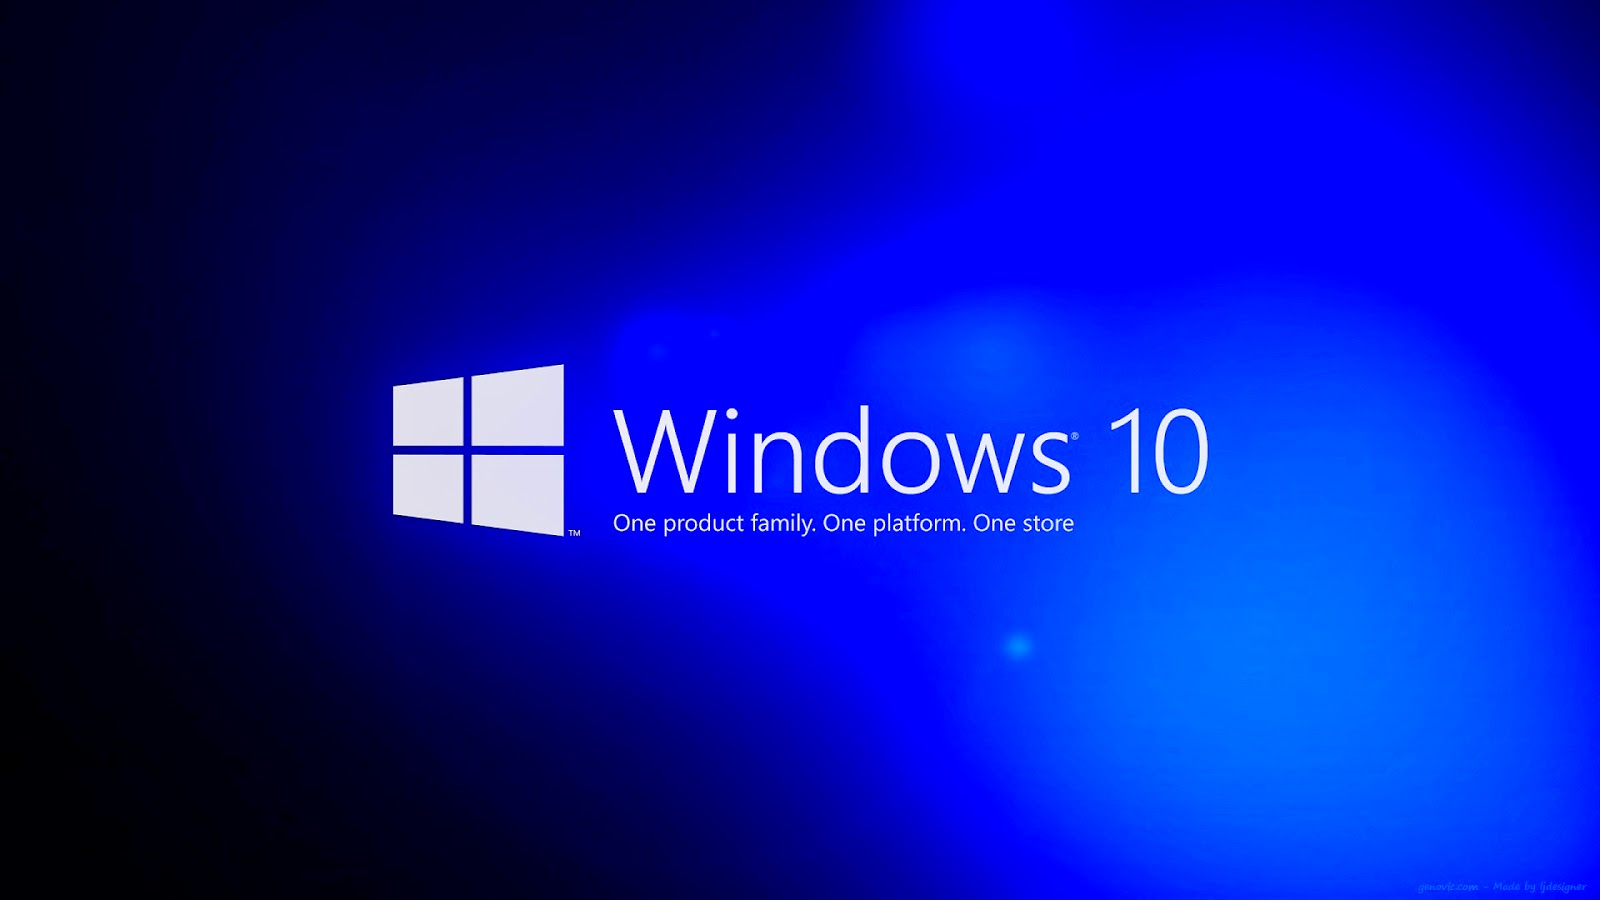 hr wallpaper windows 10